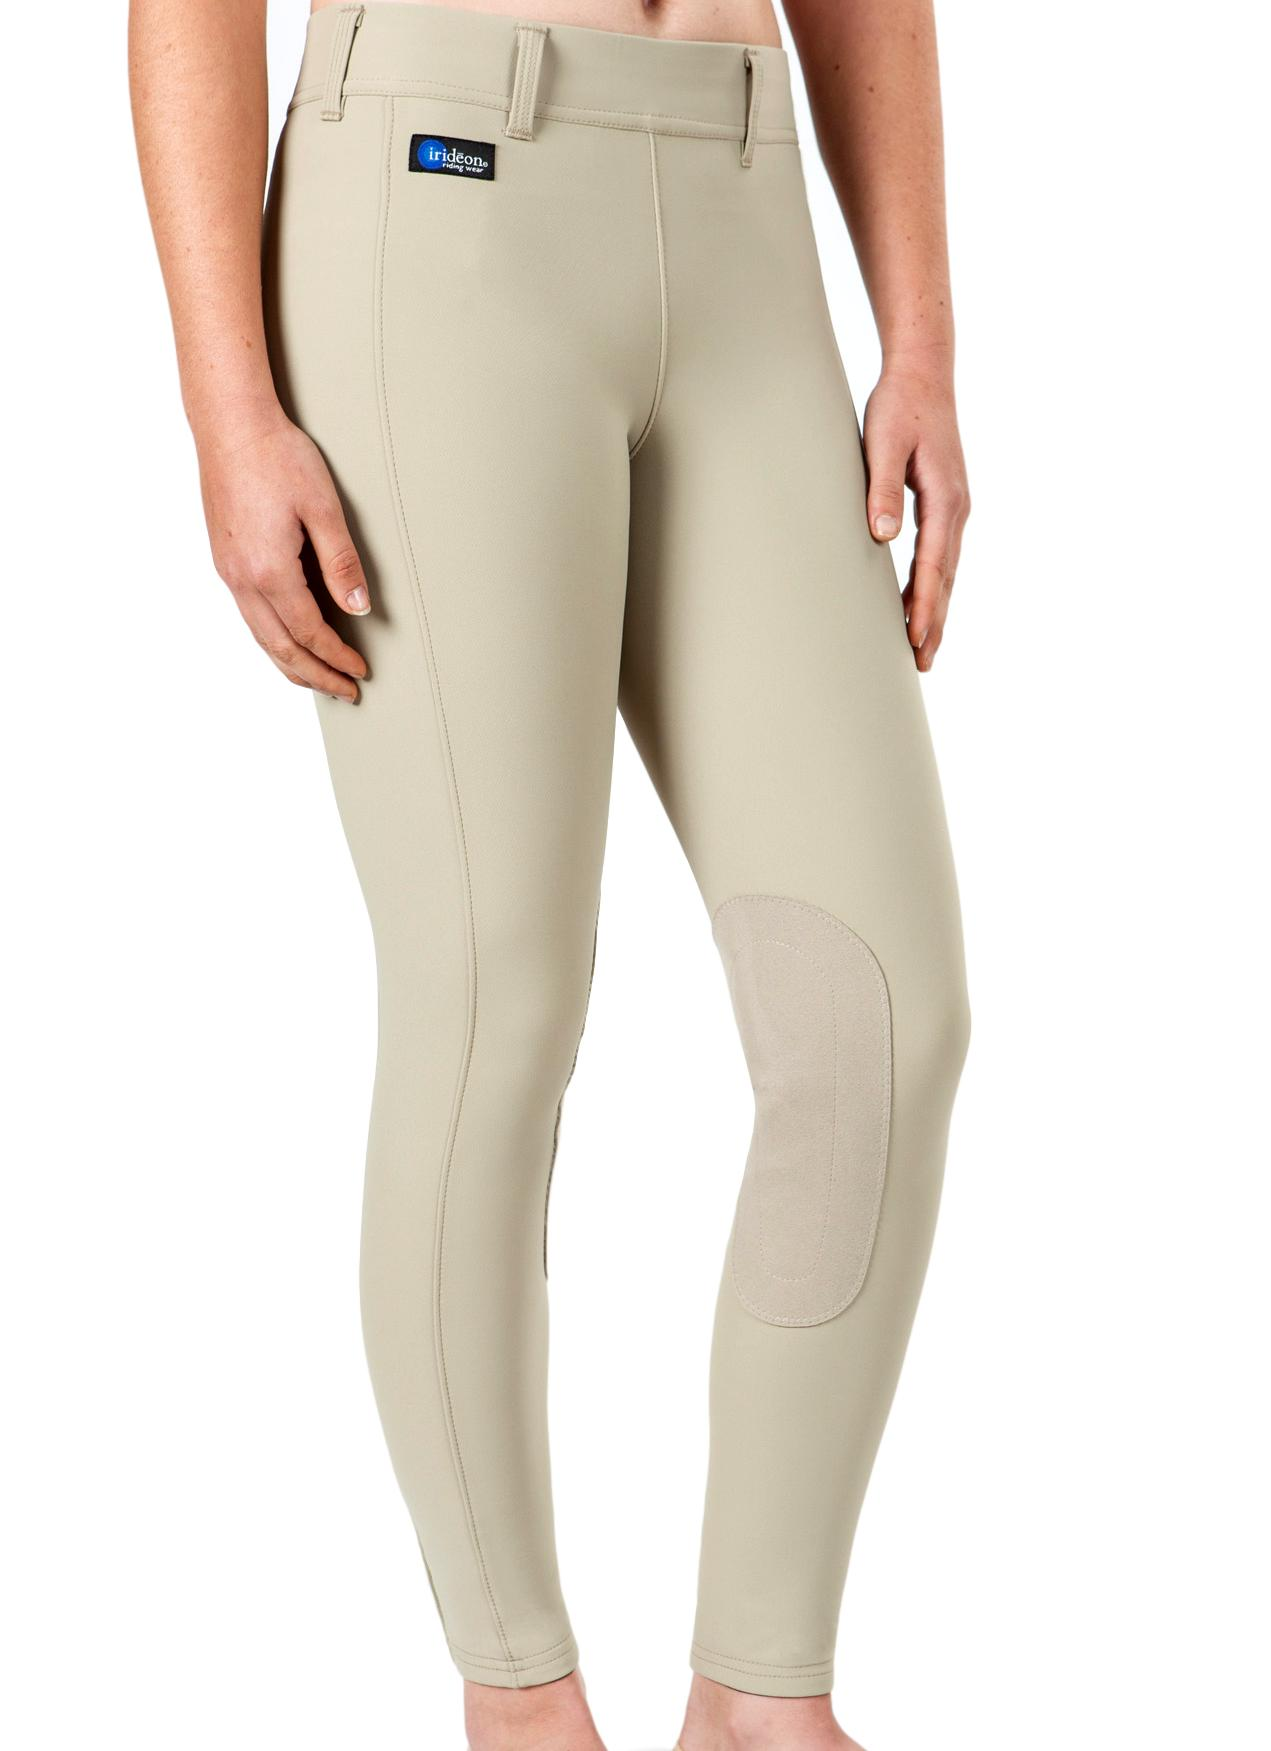 Irideon Elite Children's Cadence Elite Irideon Knee Patch Riding Breeches Stretch-Woven 2a094a